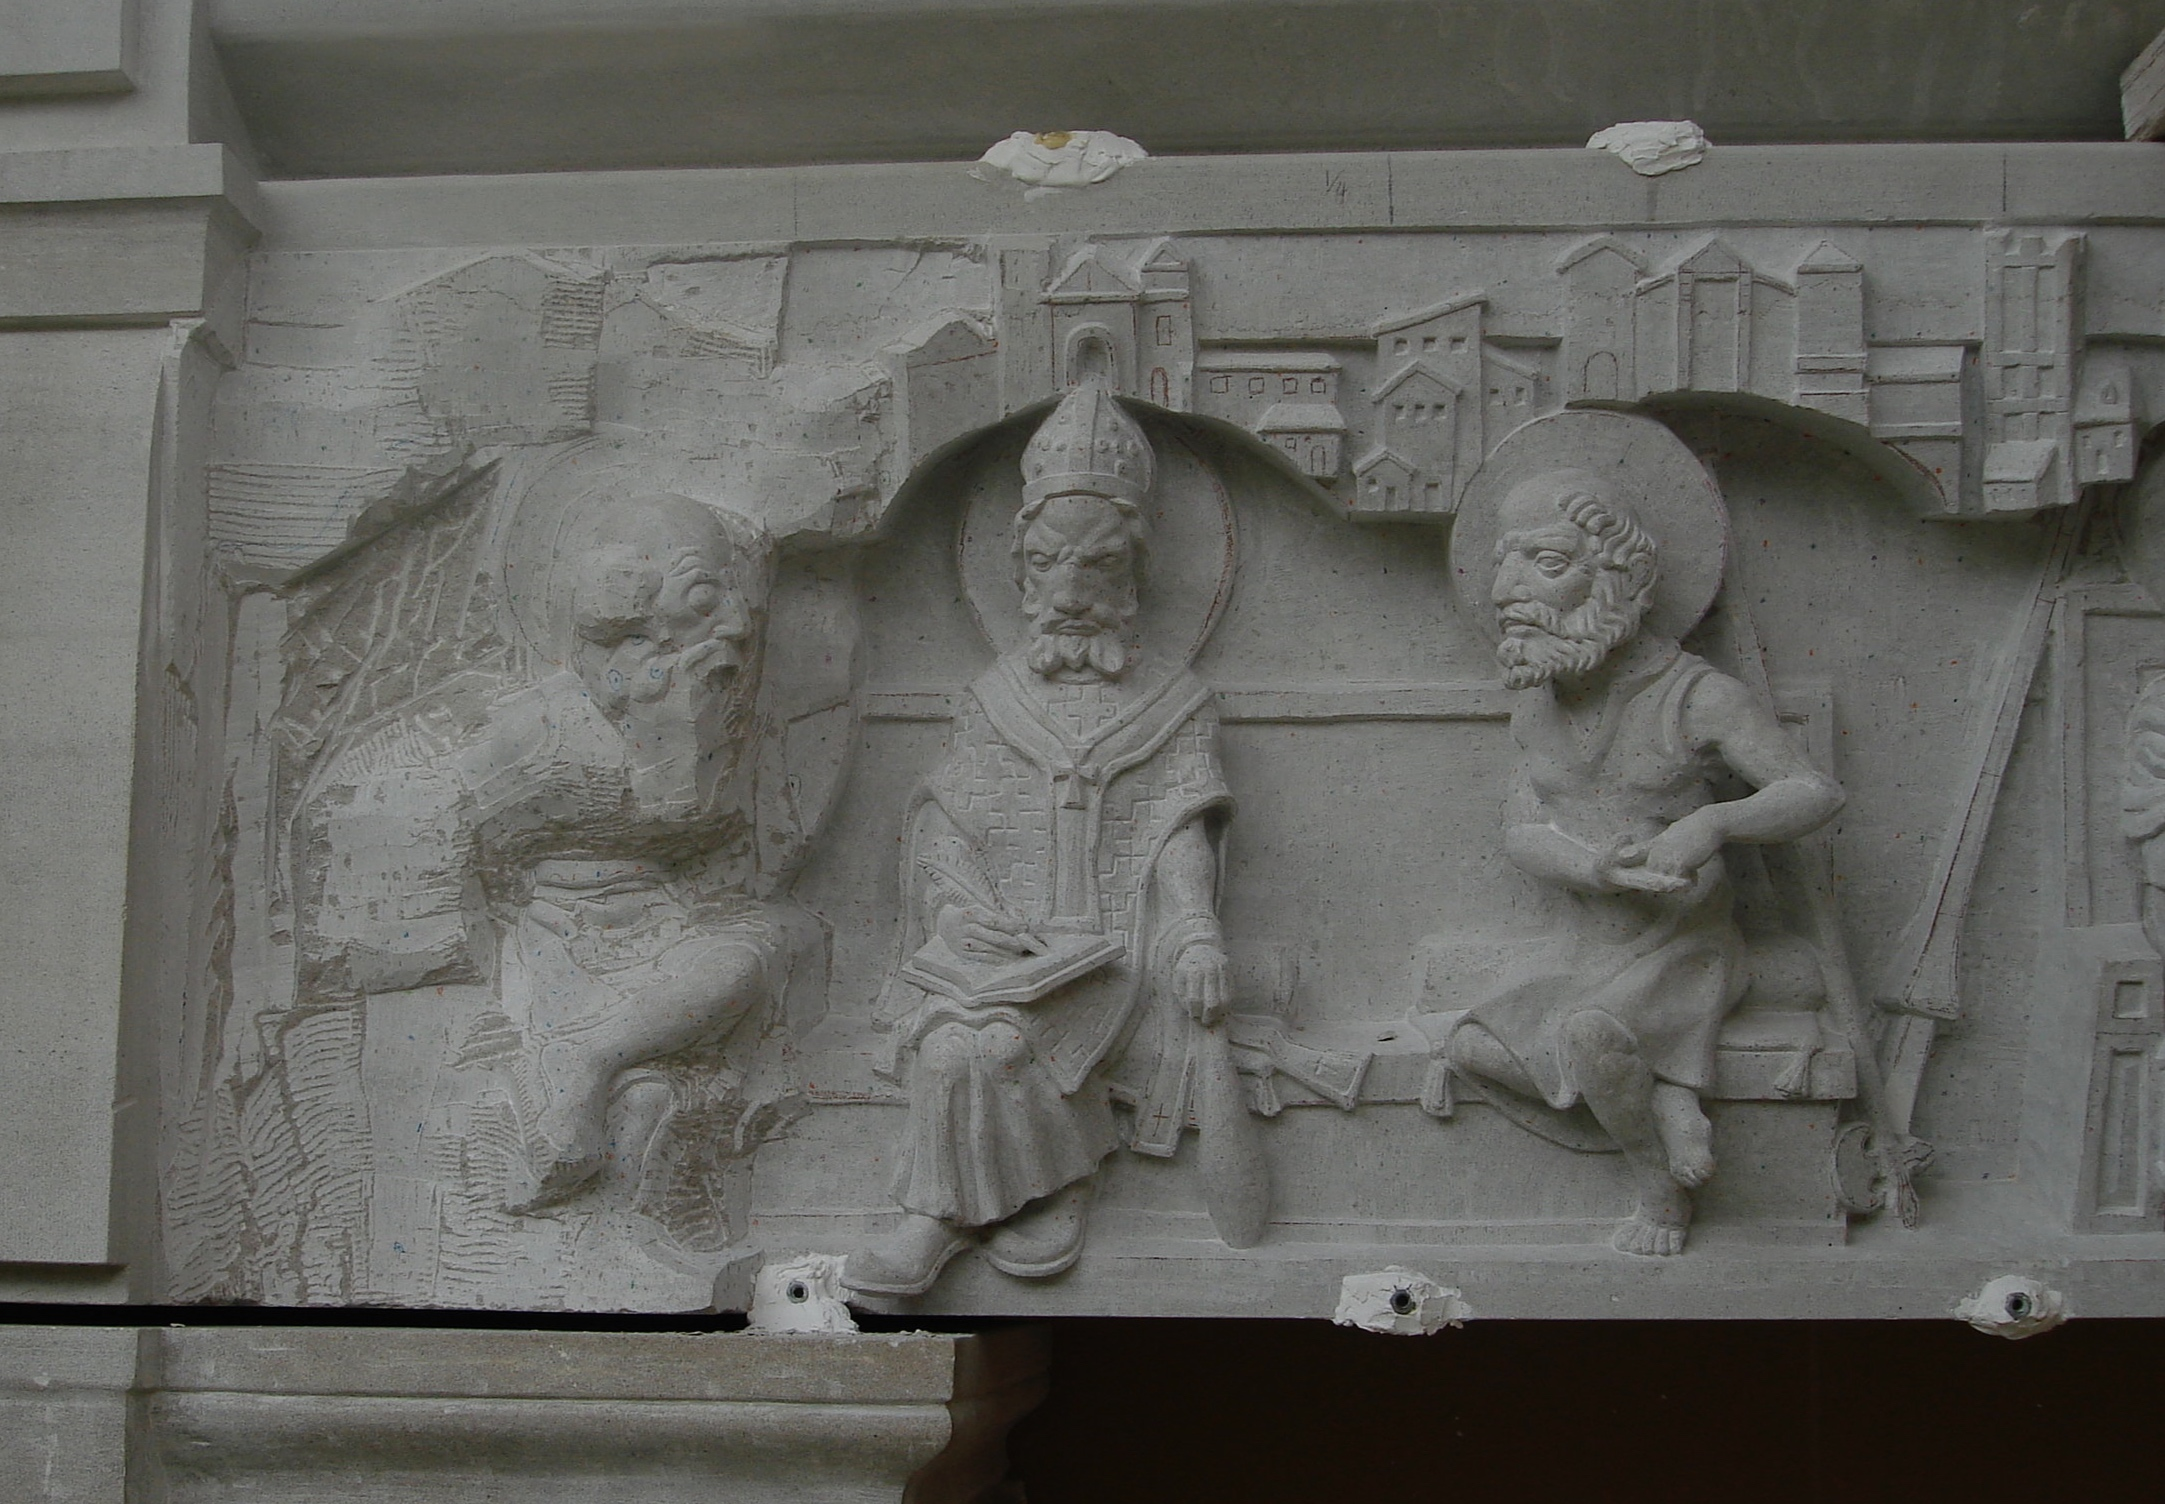 Stone - Stone carved statuary and funerary monuments are available by commission.The stone-work done at Clear Creek Abbey in Oklahoma is designed to last 1,000 years.